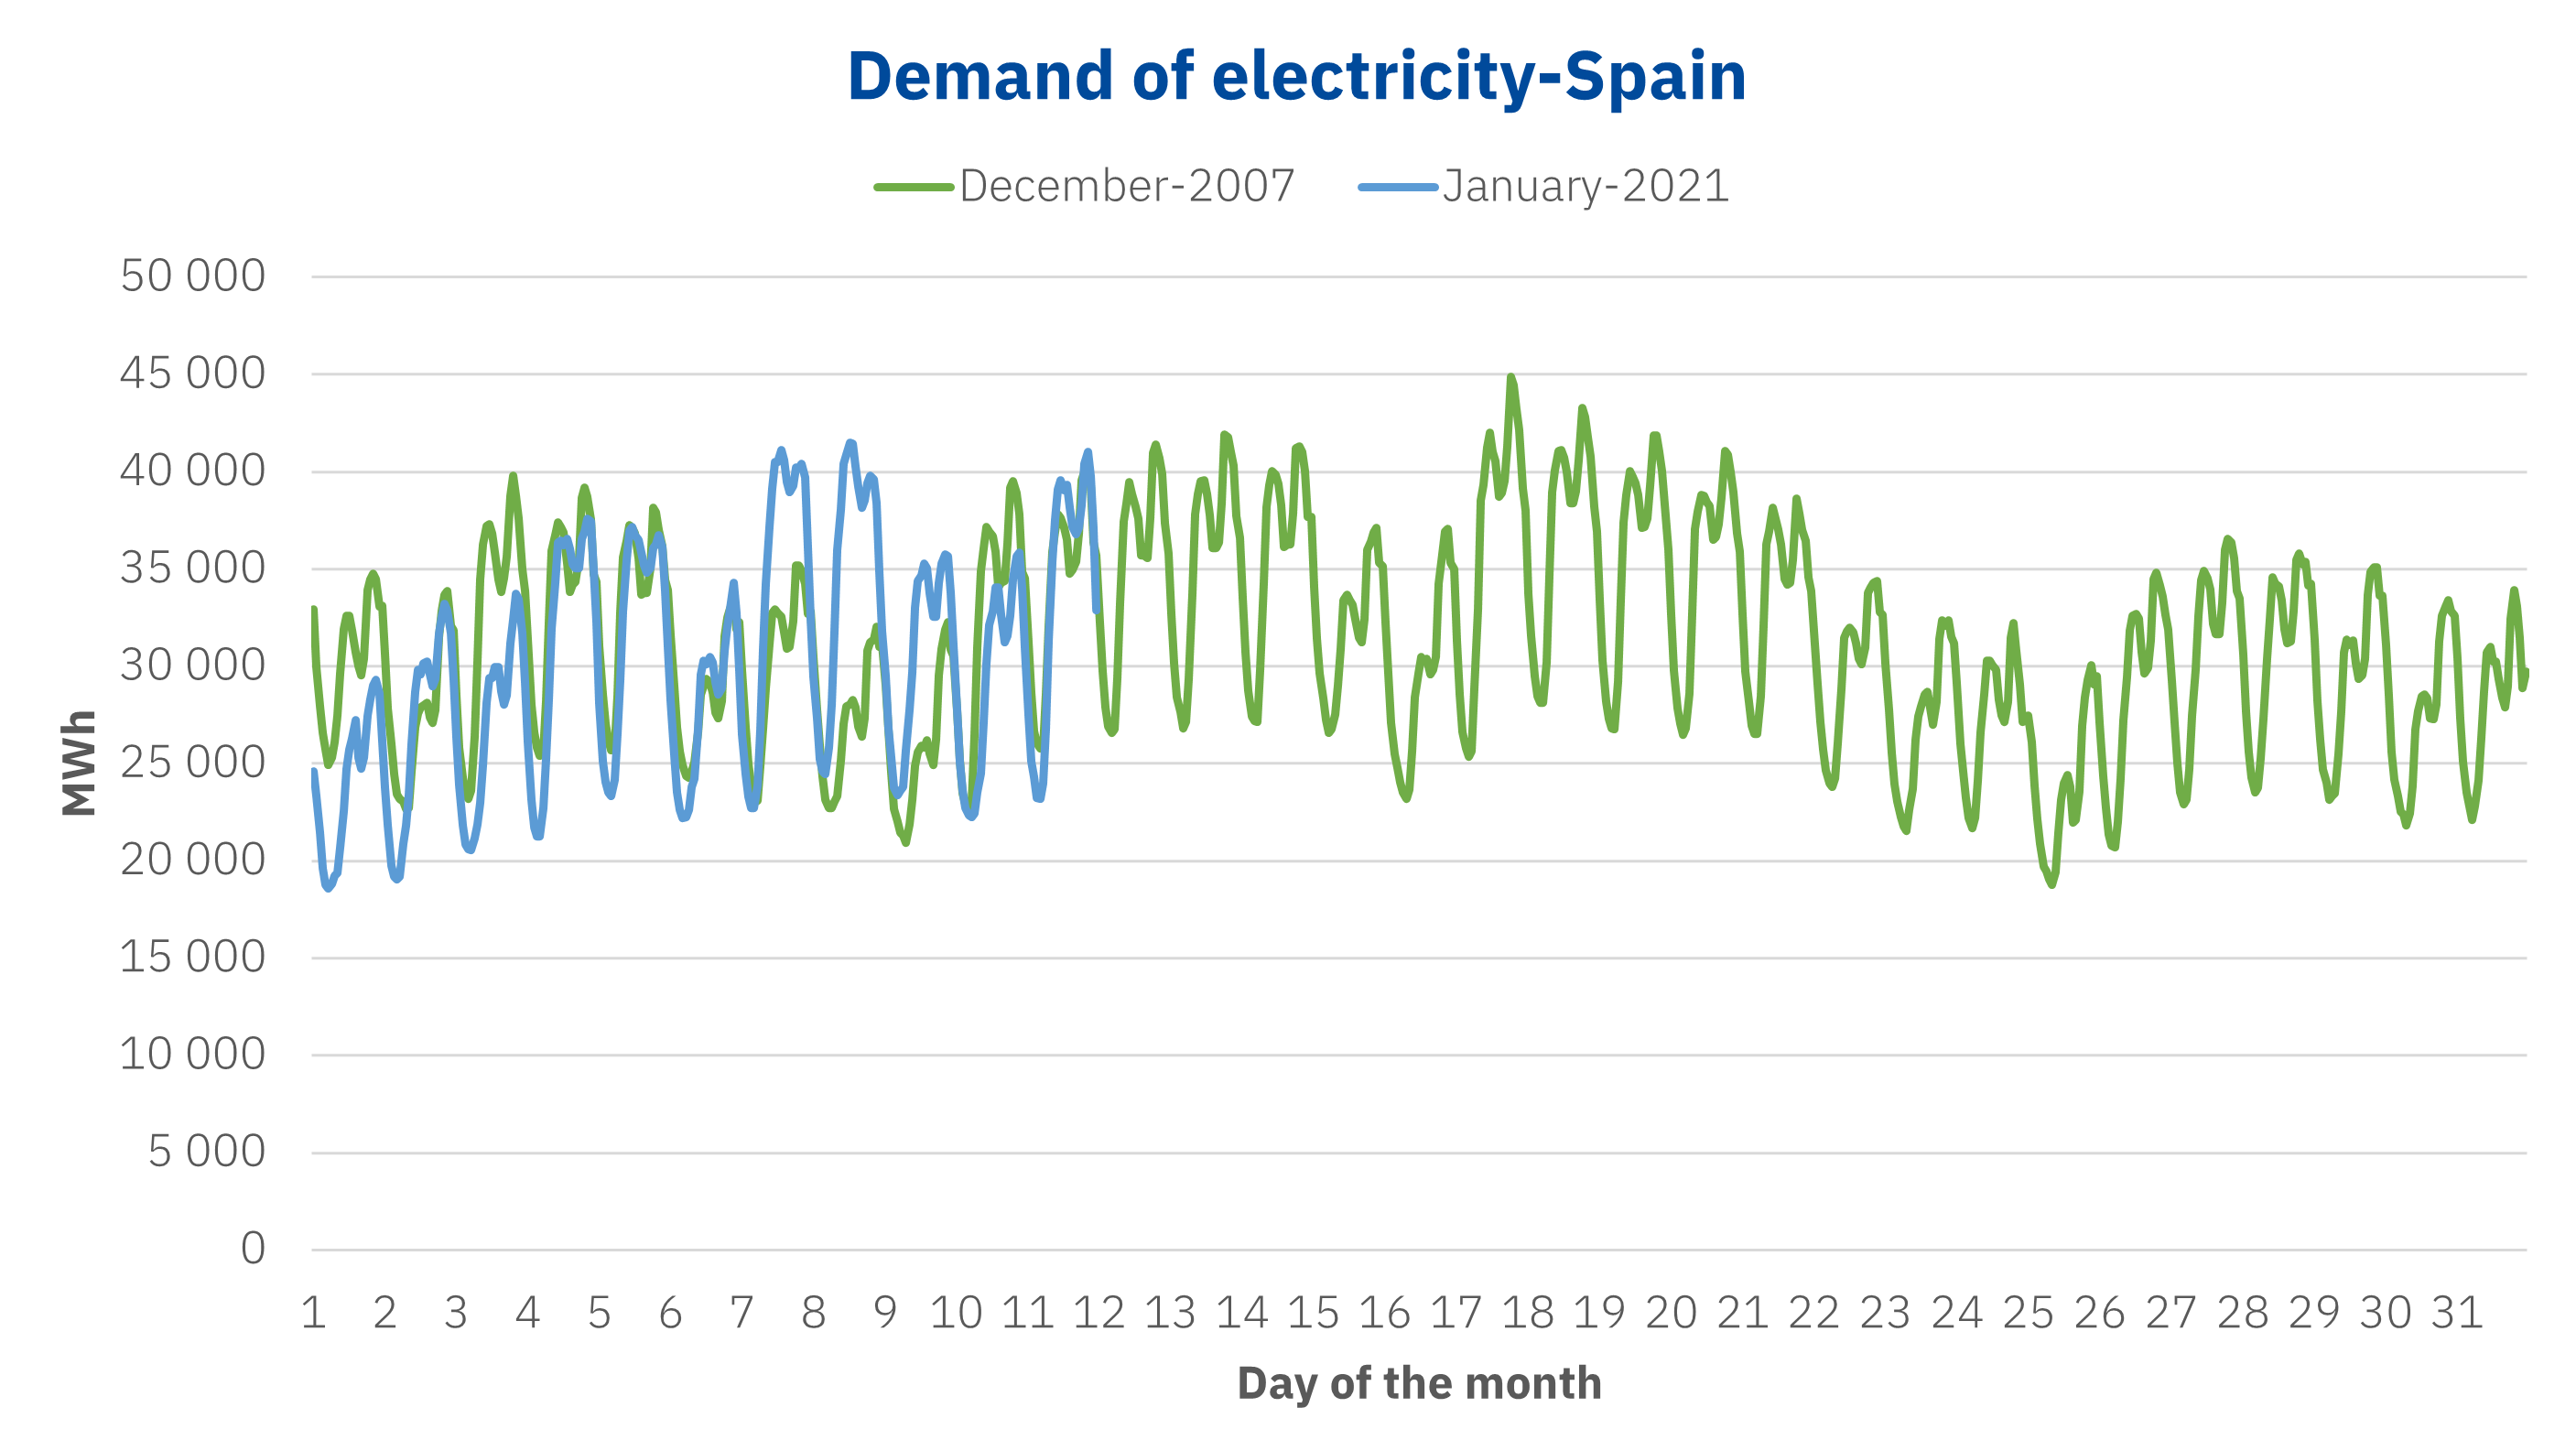 AleaSoft - Electricity demand Spain